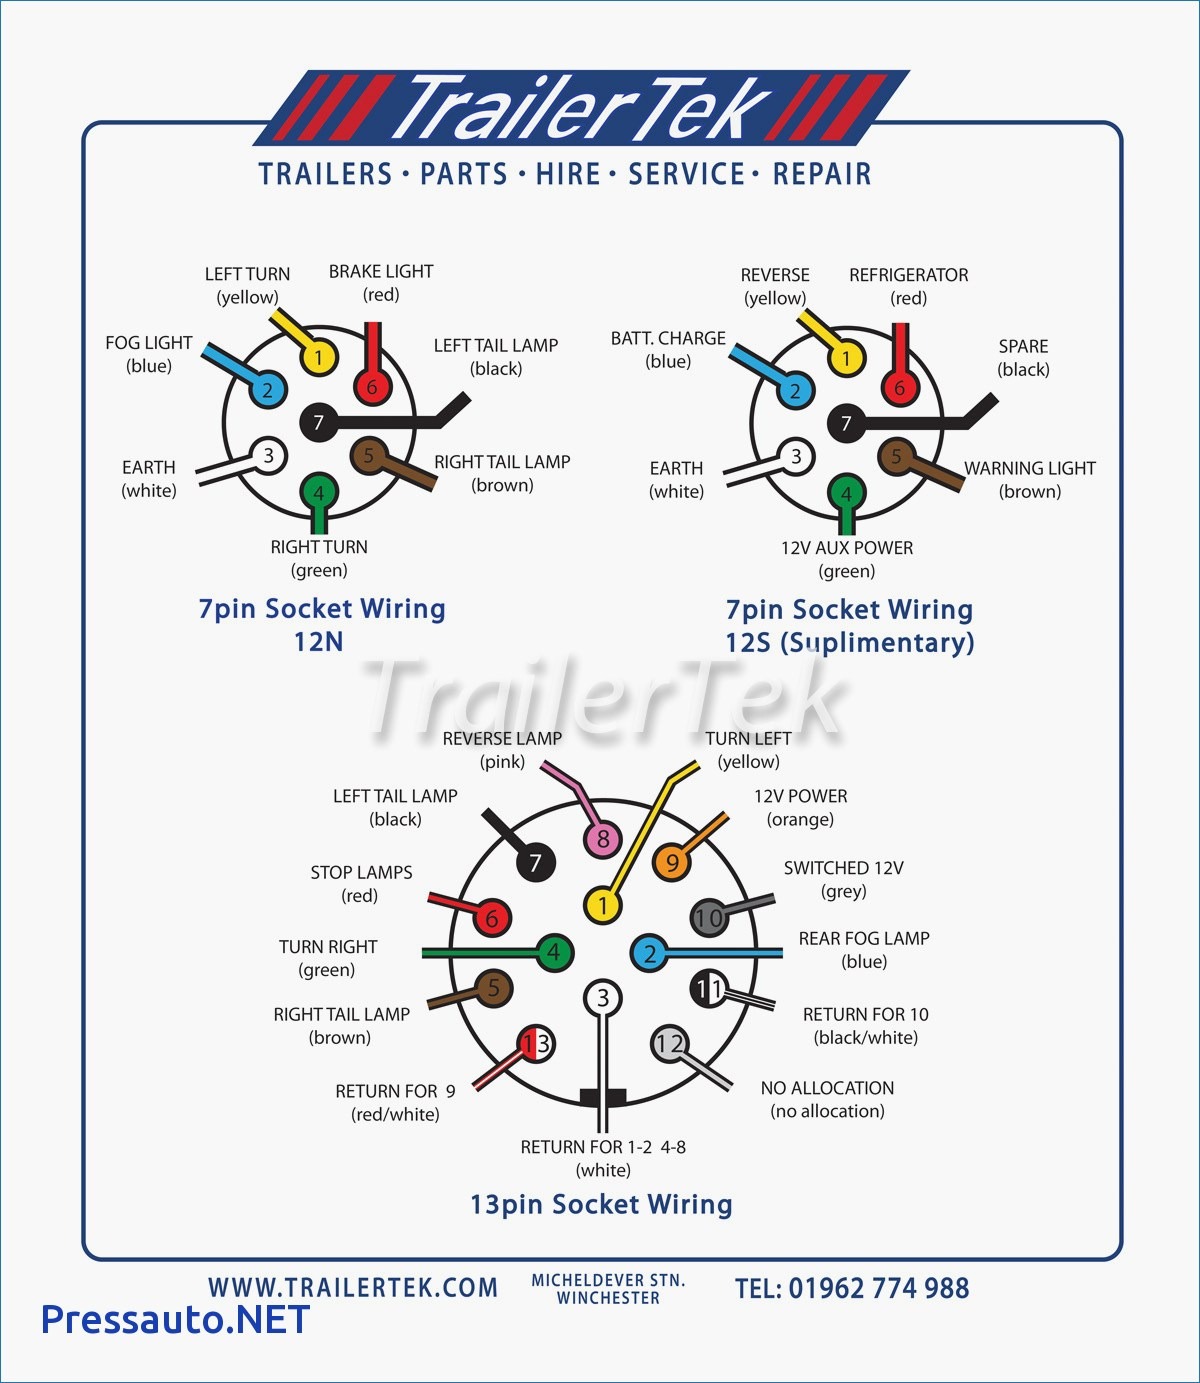 Trailer Wiring Color Chart Trailer Connector Wiring - Wiring - Wiring Diagram For A Trailer Socket